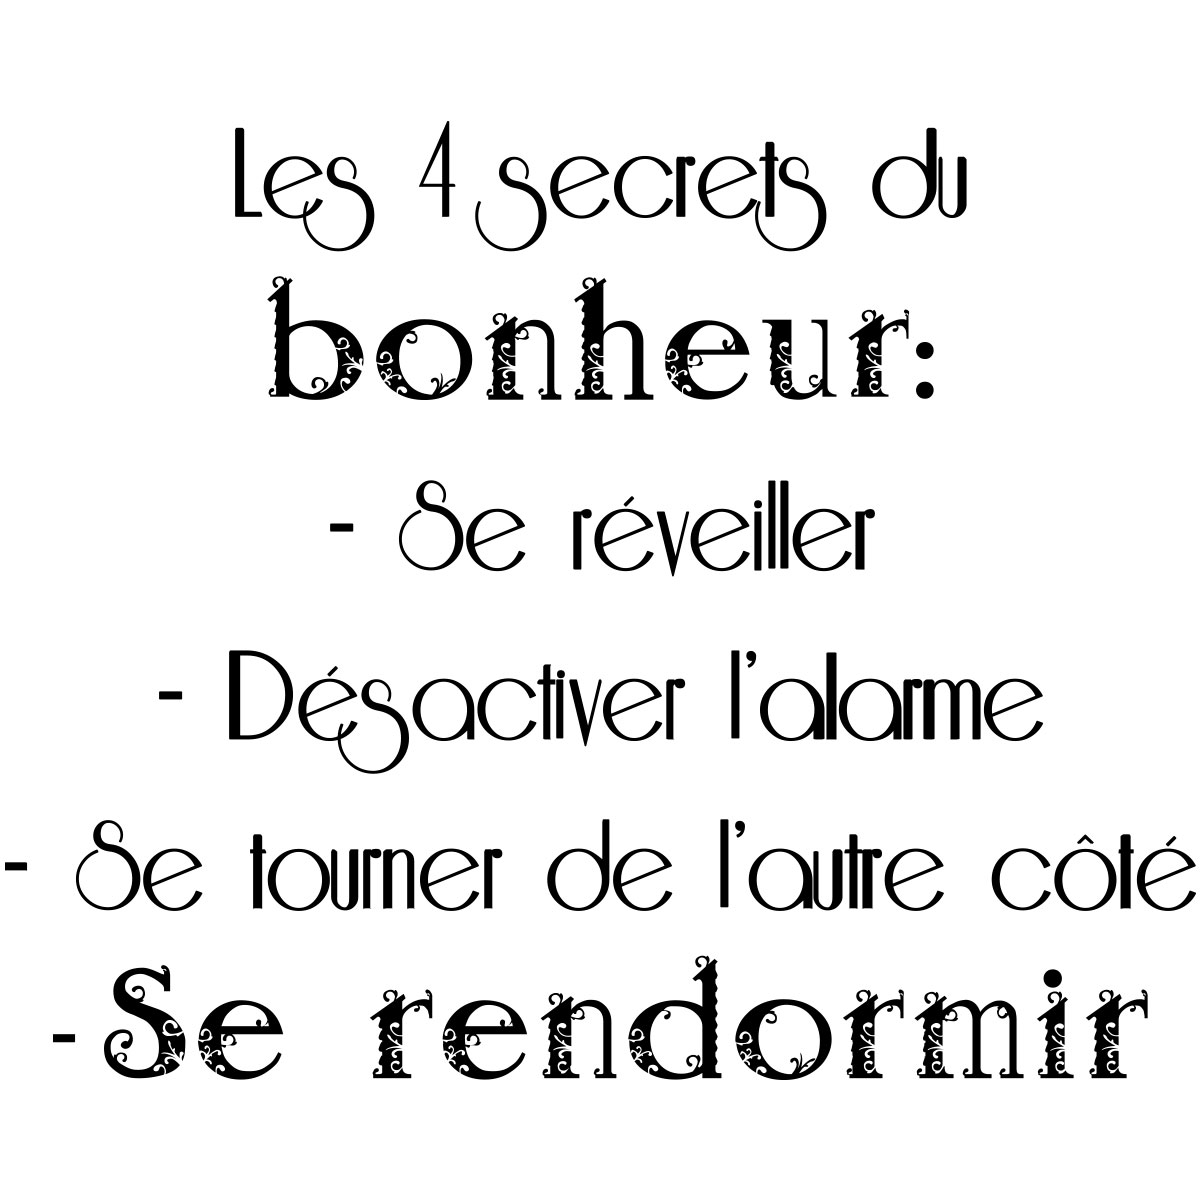 sticker citation les 4 secrets du bonheur stickers citations fran ais ambiance sticker. Black Bedroom Furniture Sets. Home Design Ideas